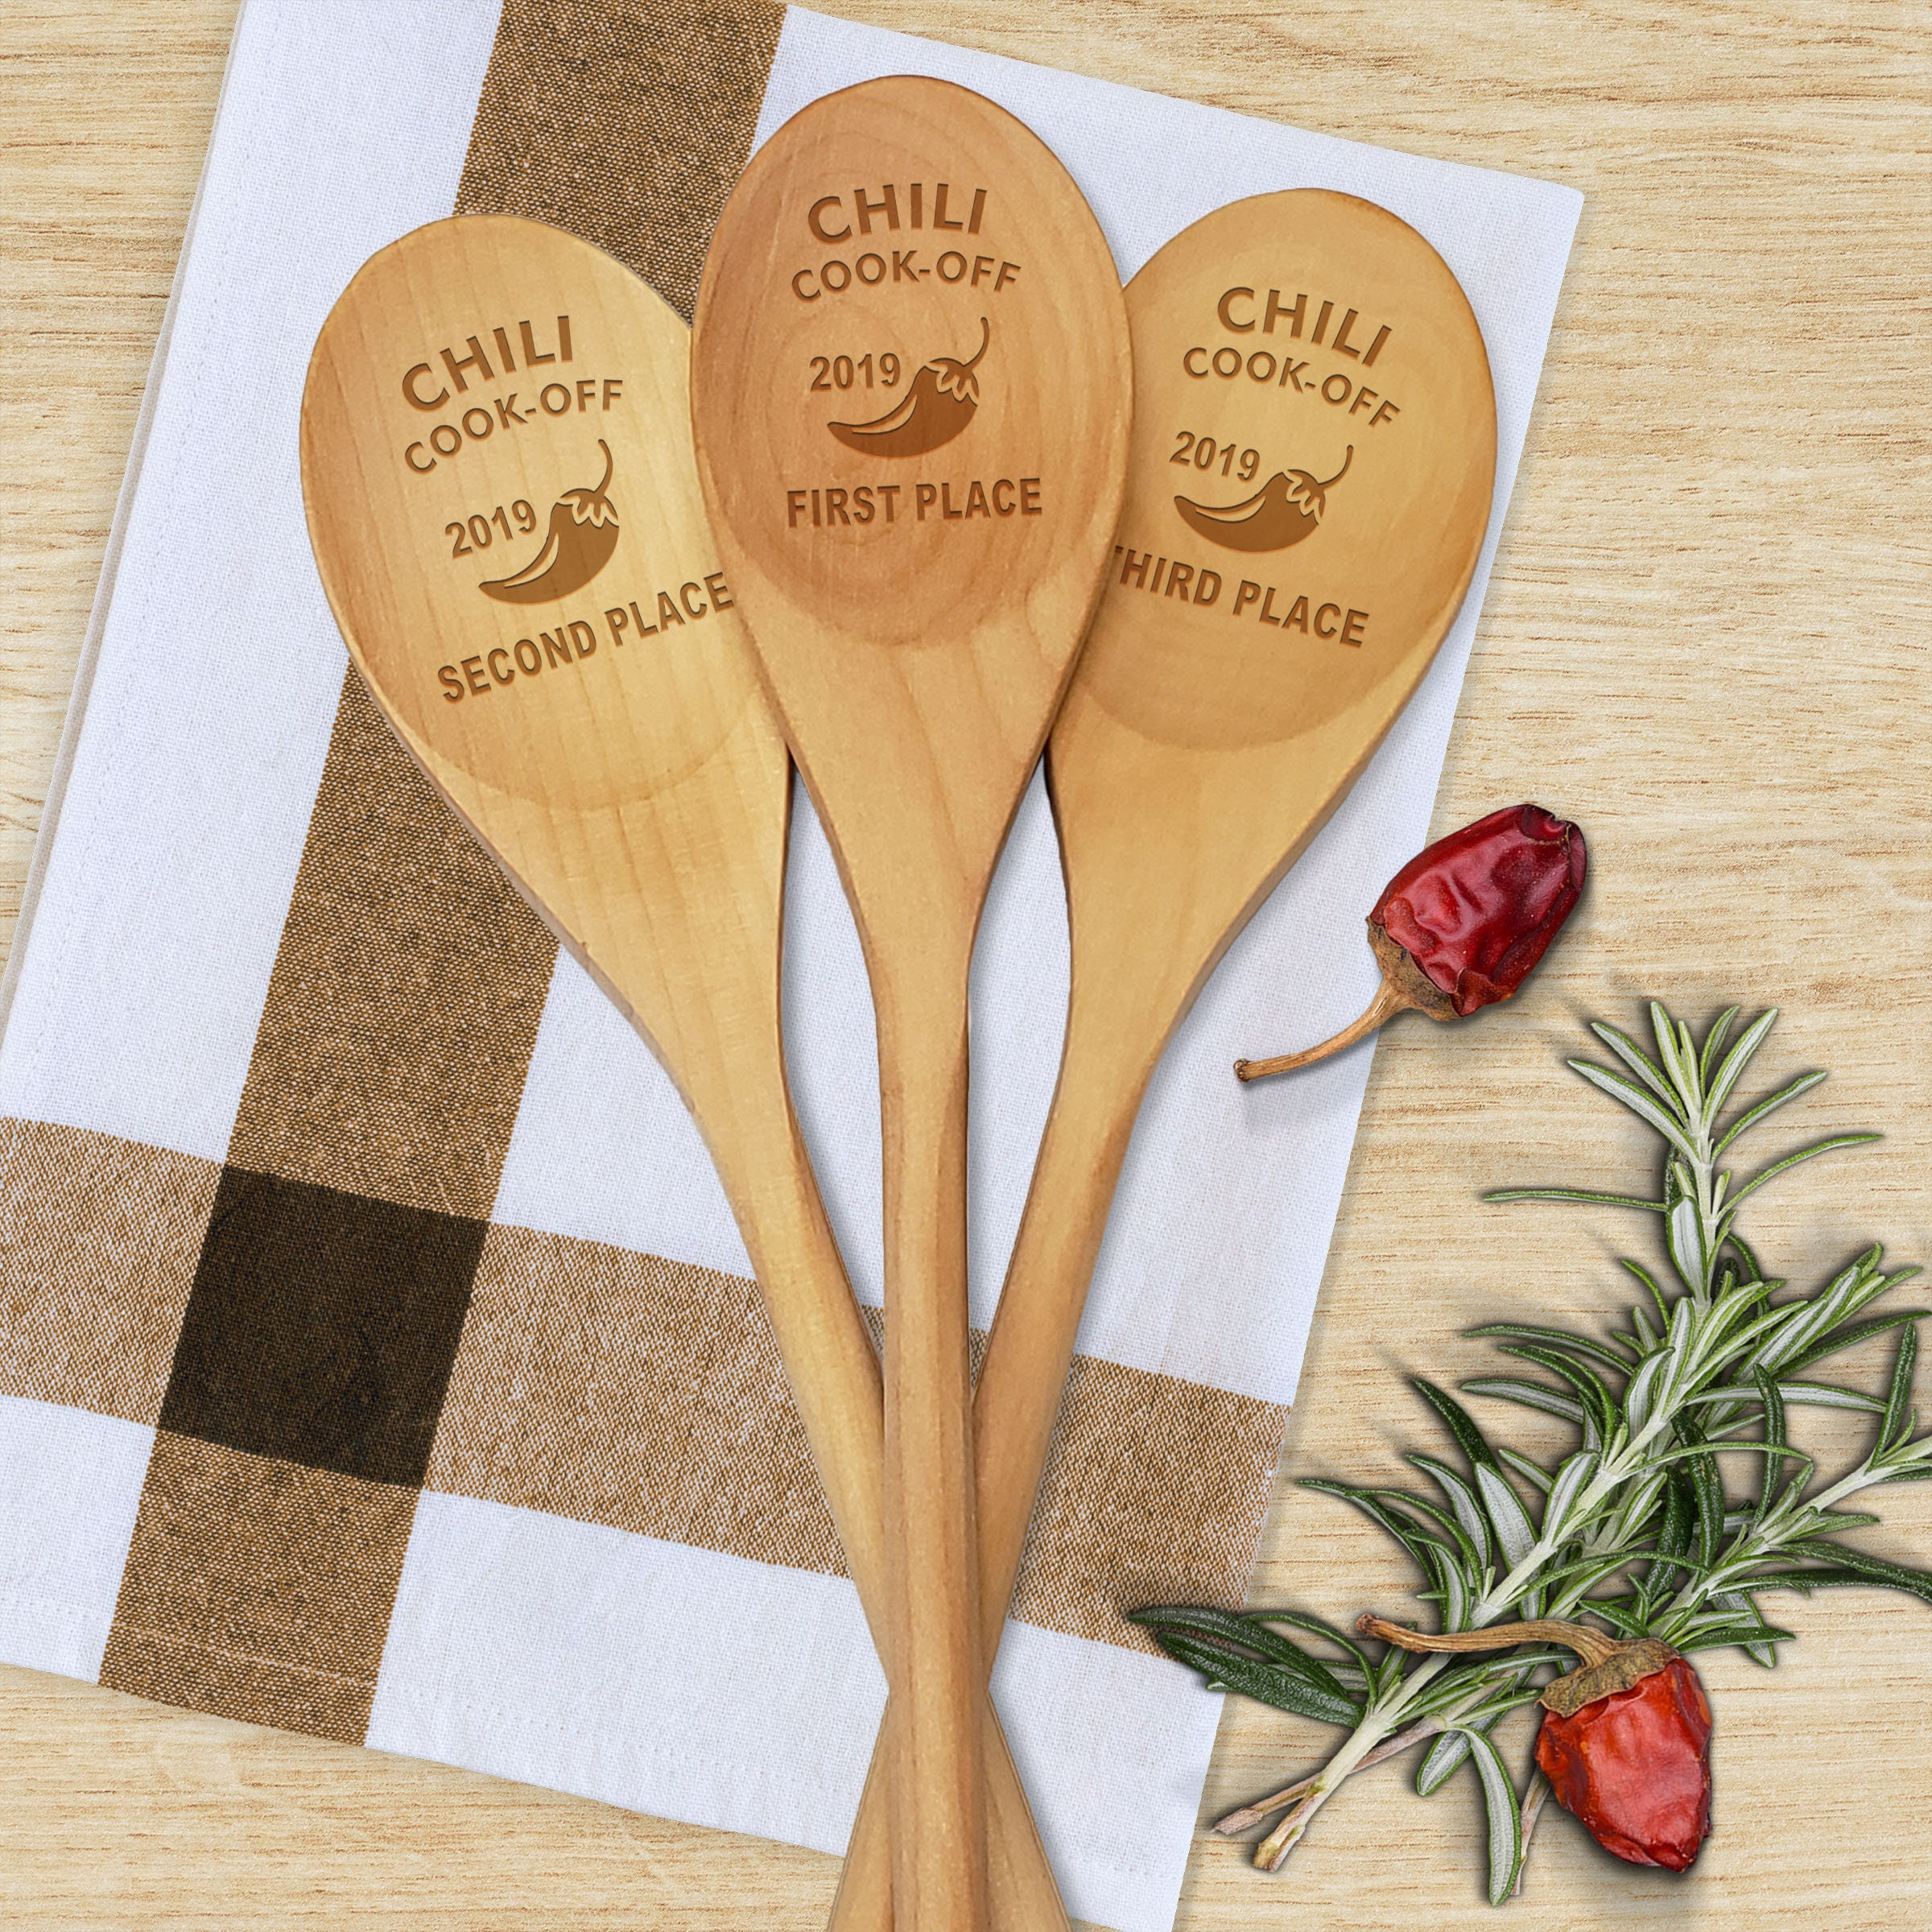 Chili Cook Off Personalized Wooden Spoon Prize, Hostess Gift, First Place  Chili Cook-Off Award, Cookoff Champion, Engraved Birch Wood Spoon